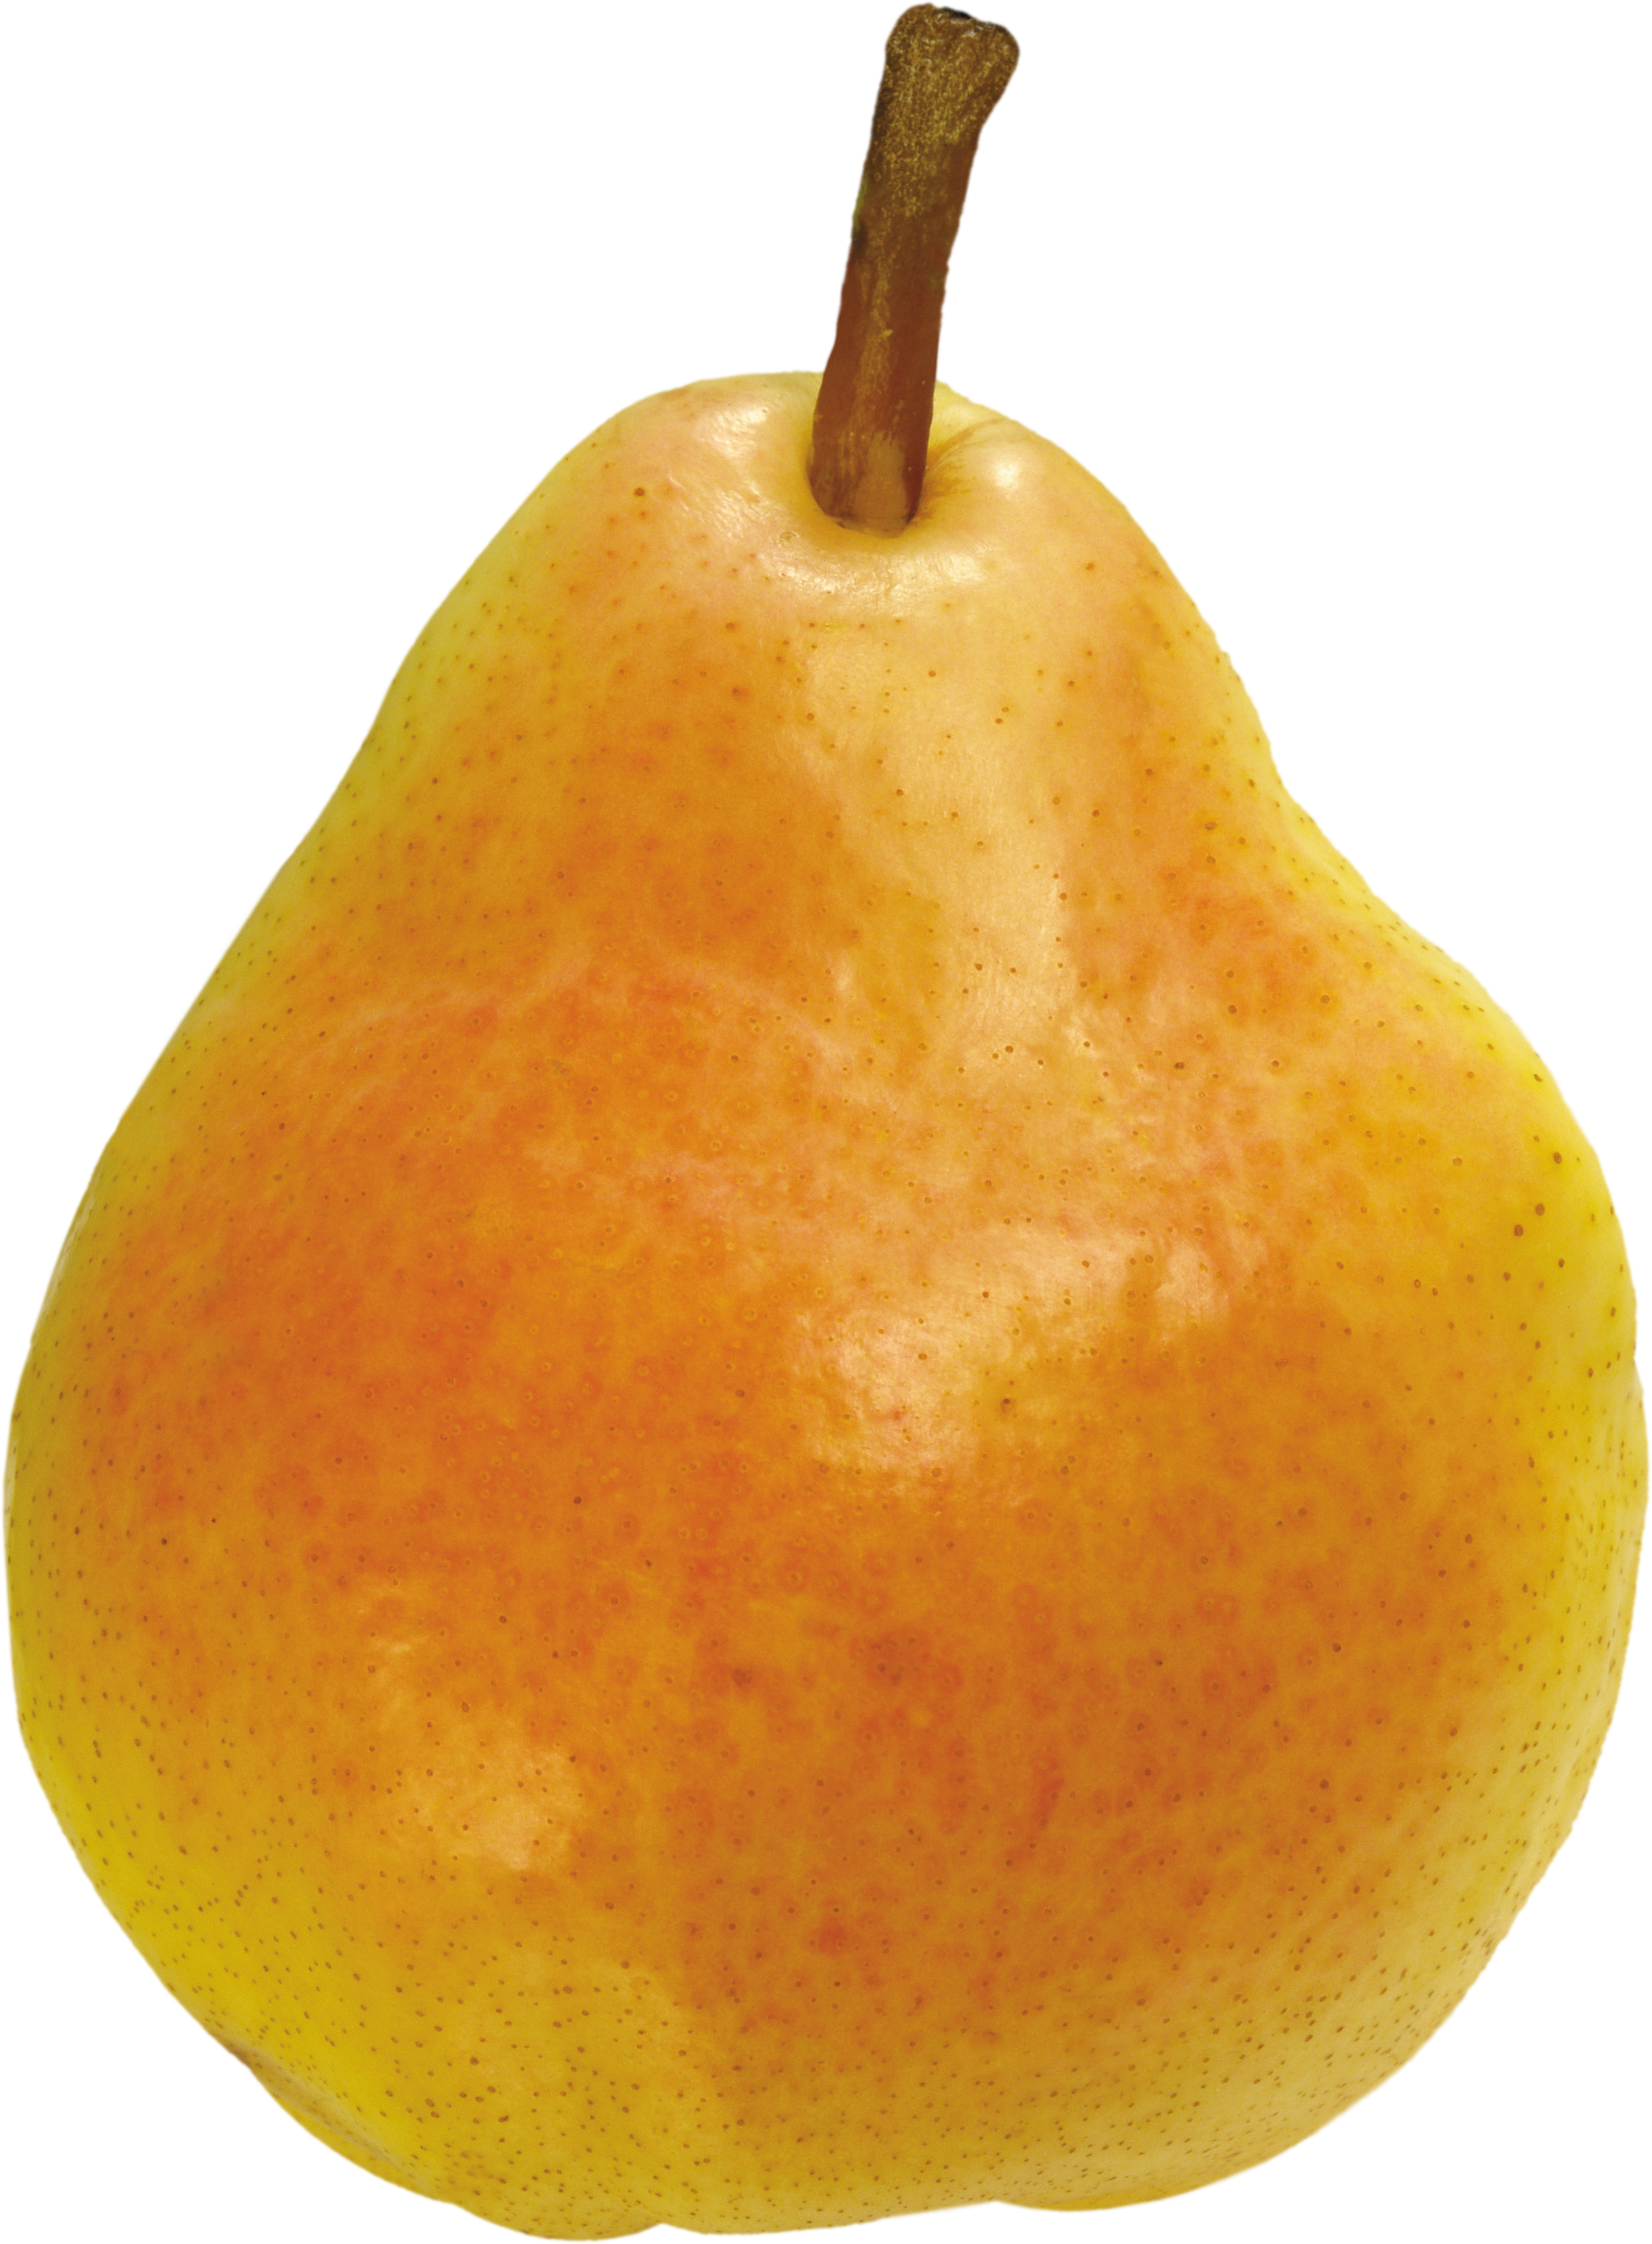 Pin by on pinterest. Pear clipart fruit seed